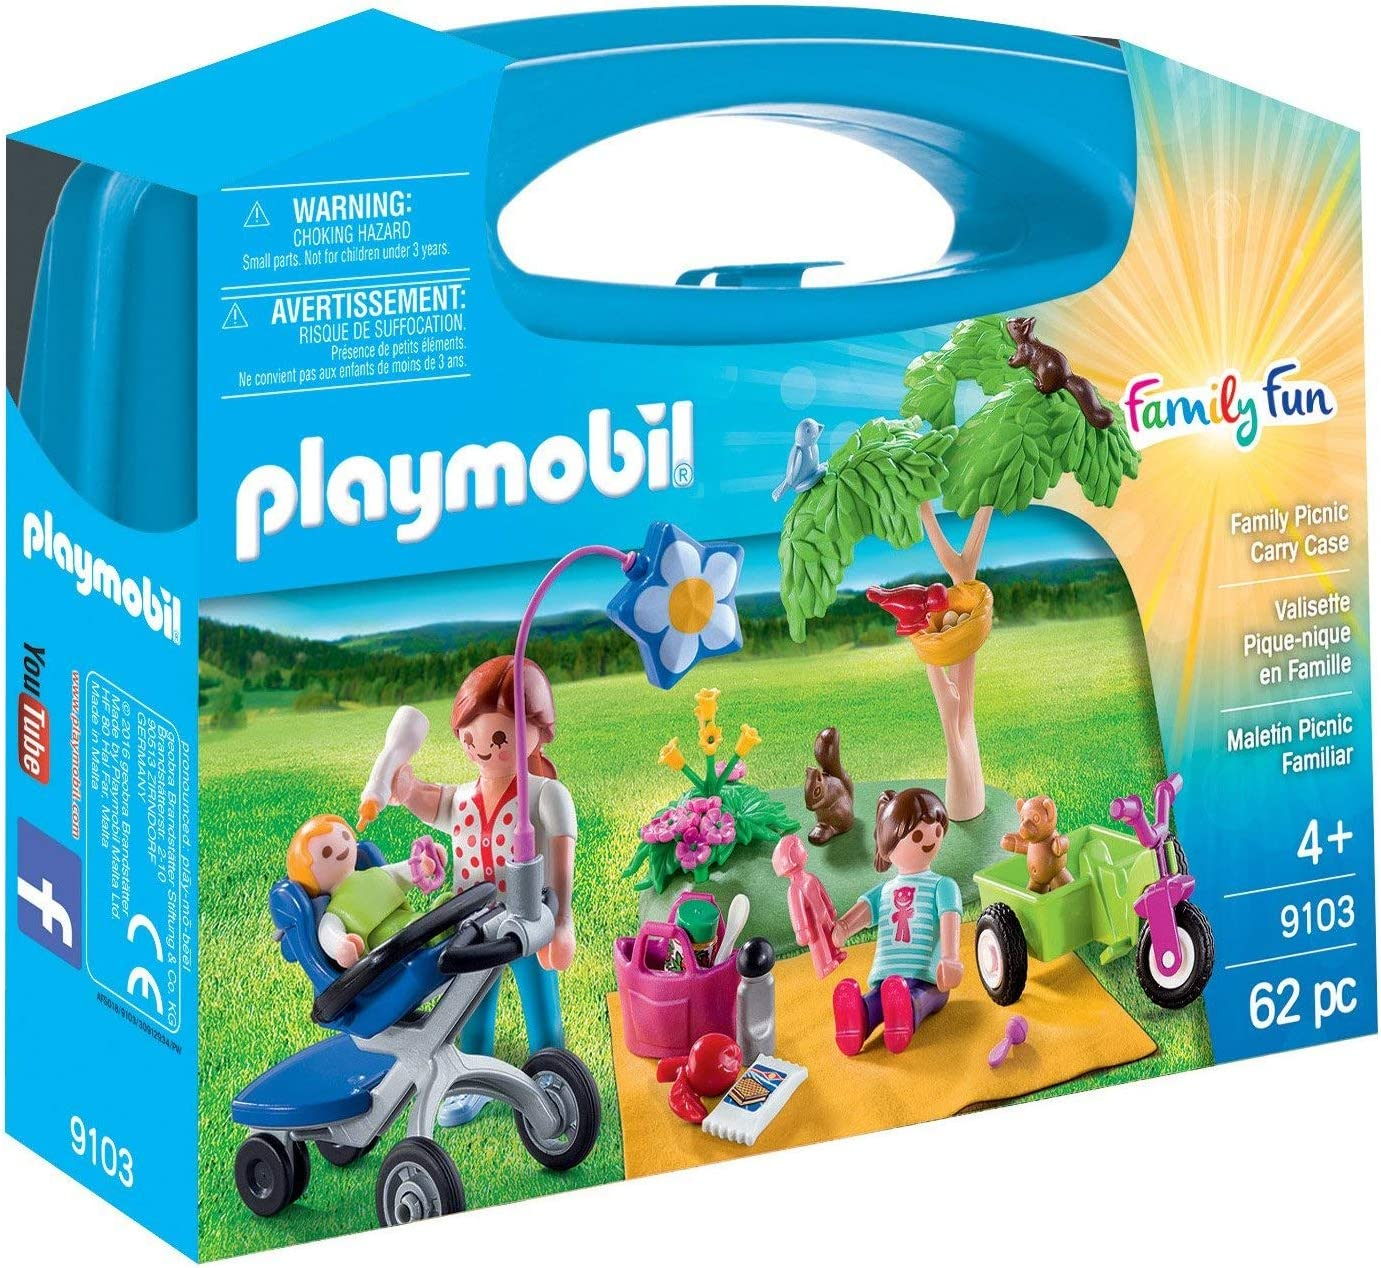 PLAYMOBIL- Maletín Grande Picnic Familiar, única (9103): Amazon.es ...